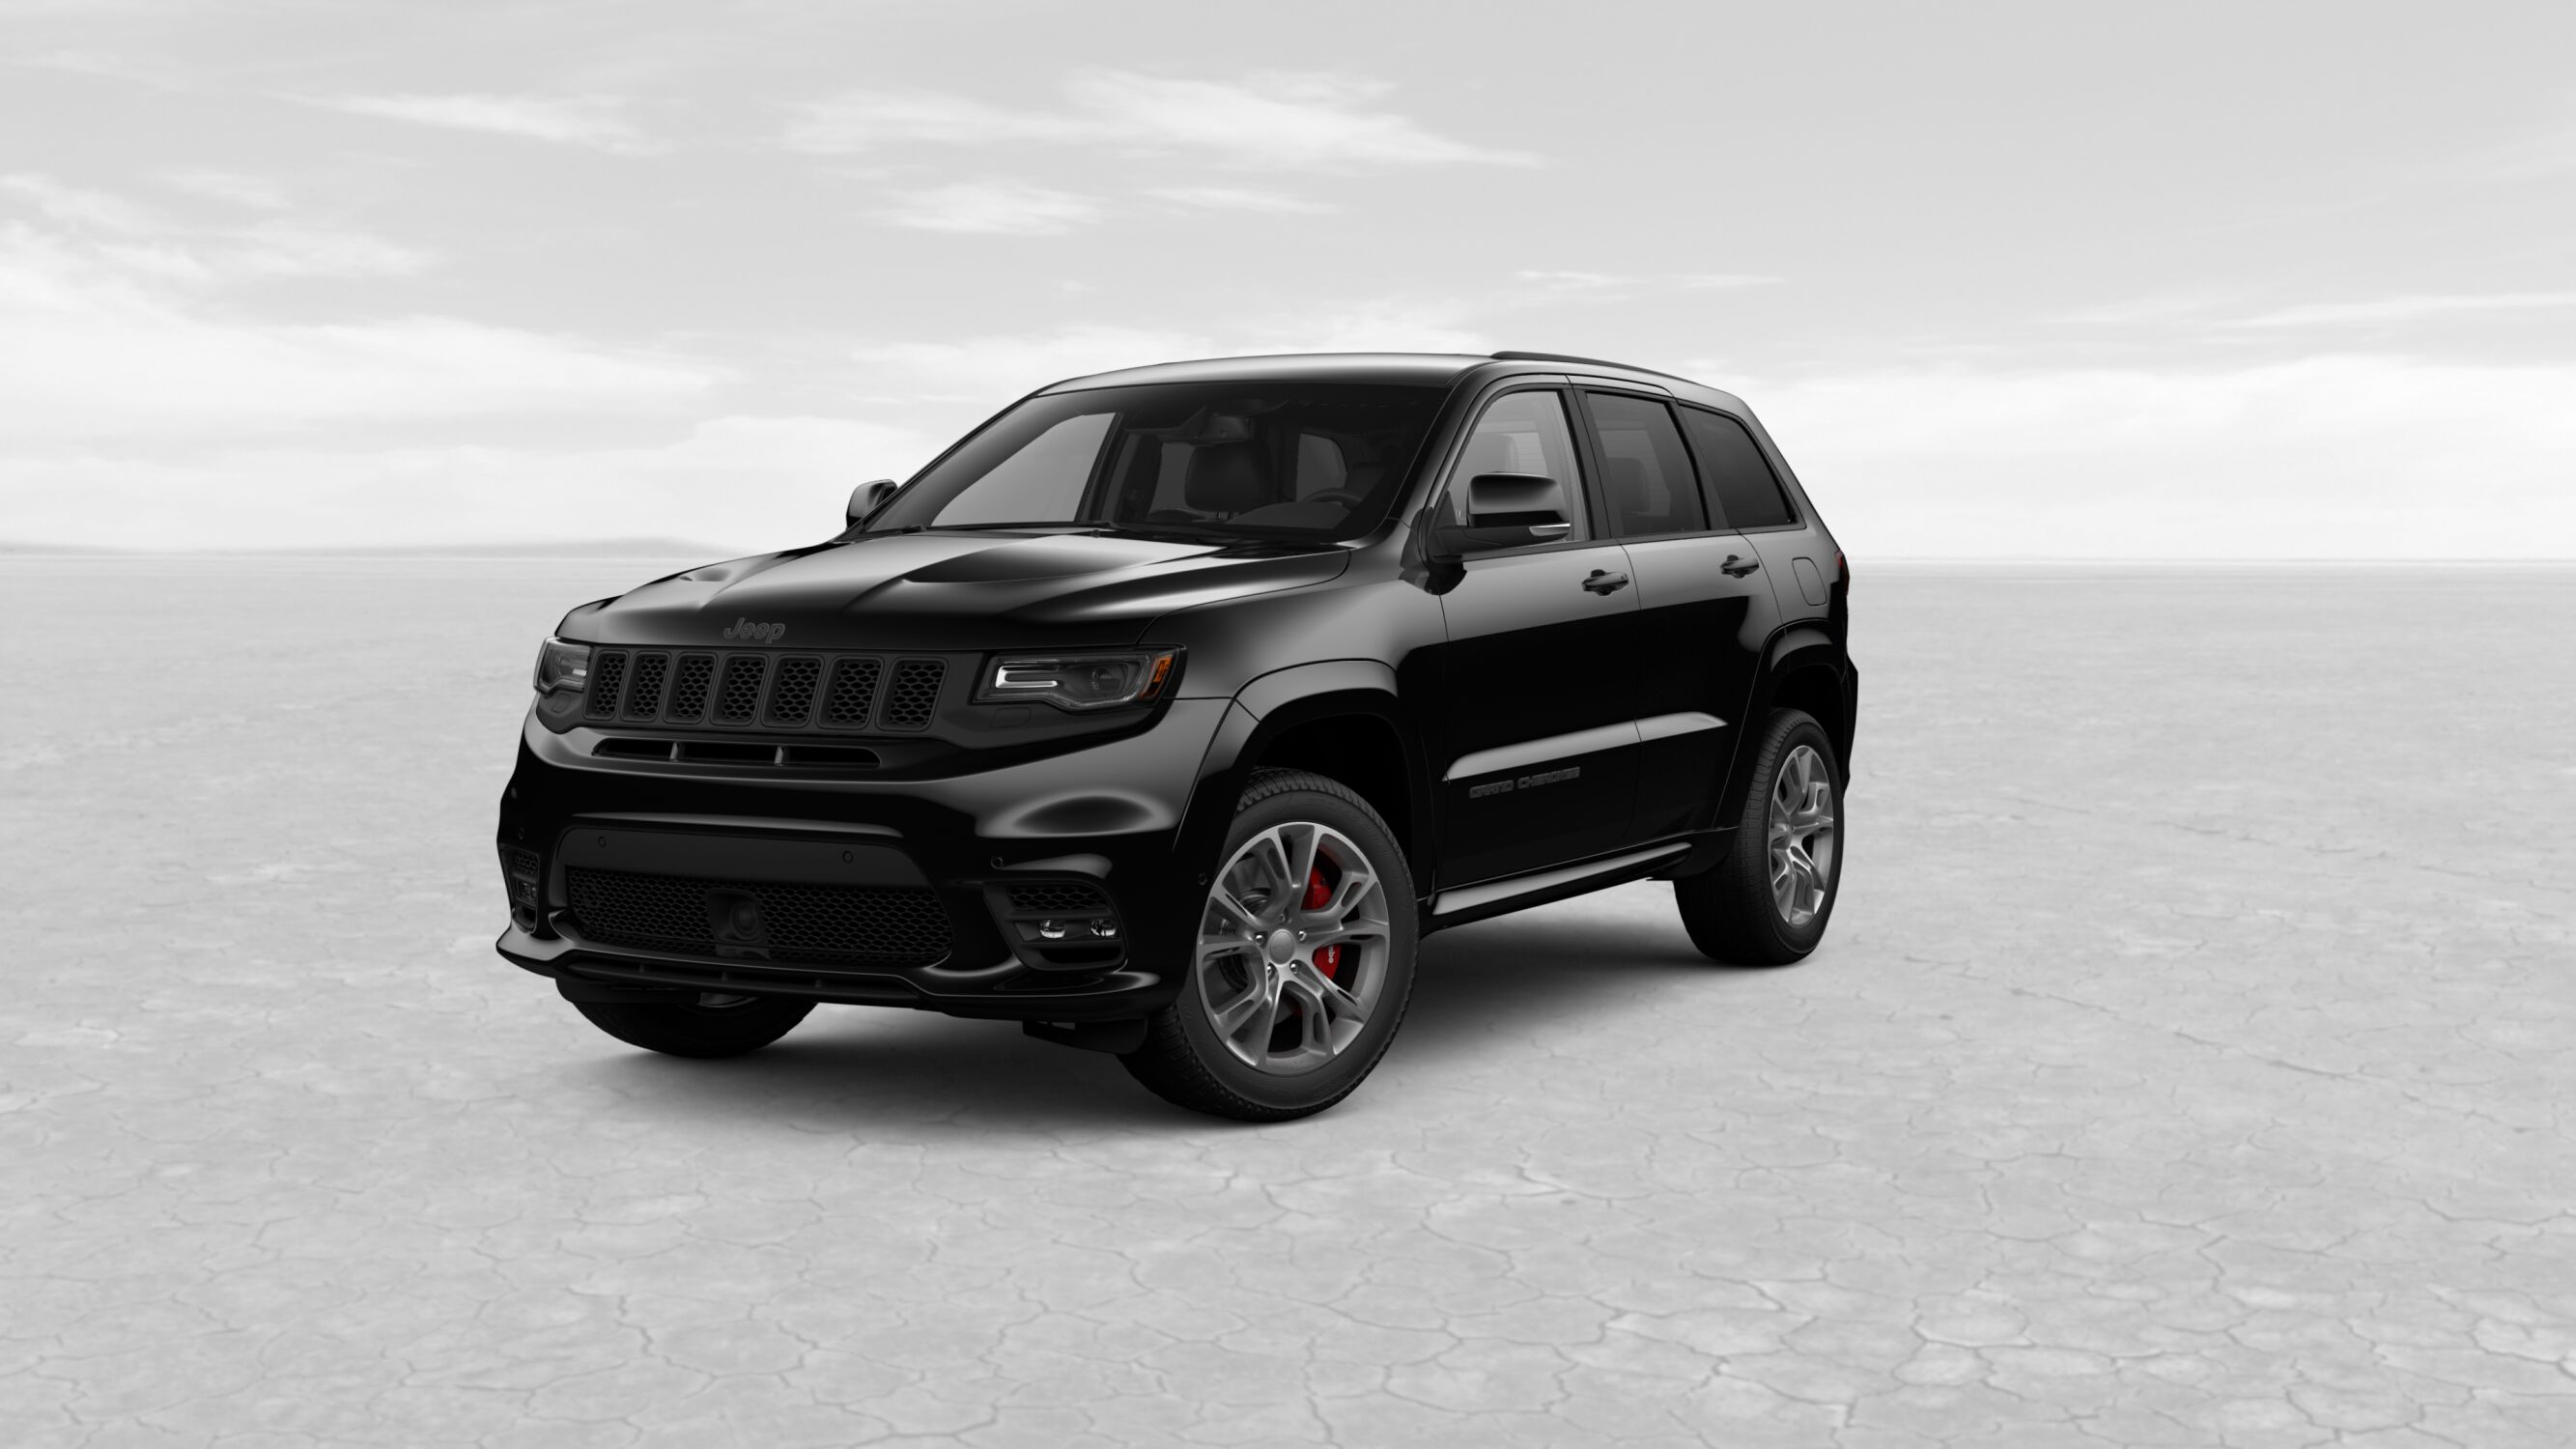 2018 Jeep Grand Cherokee Srt Marks Casa Chrysler 1950s Wagoneer